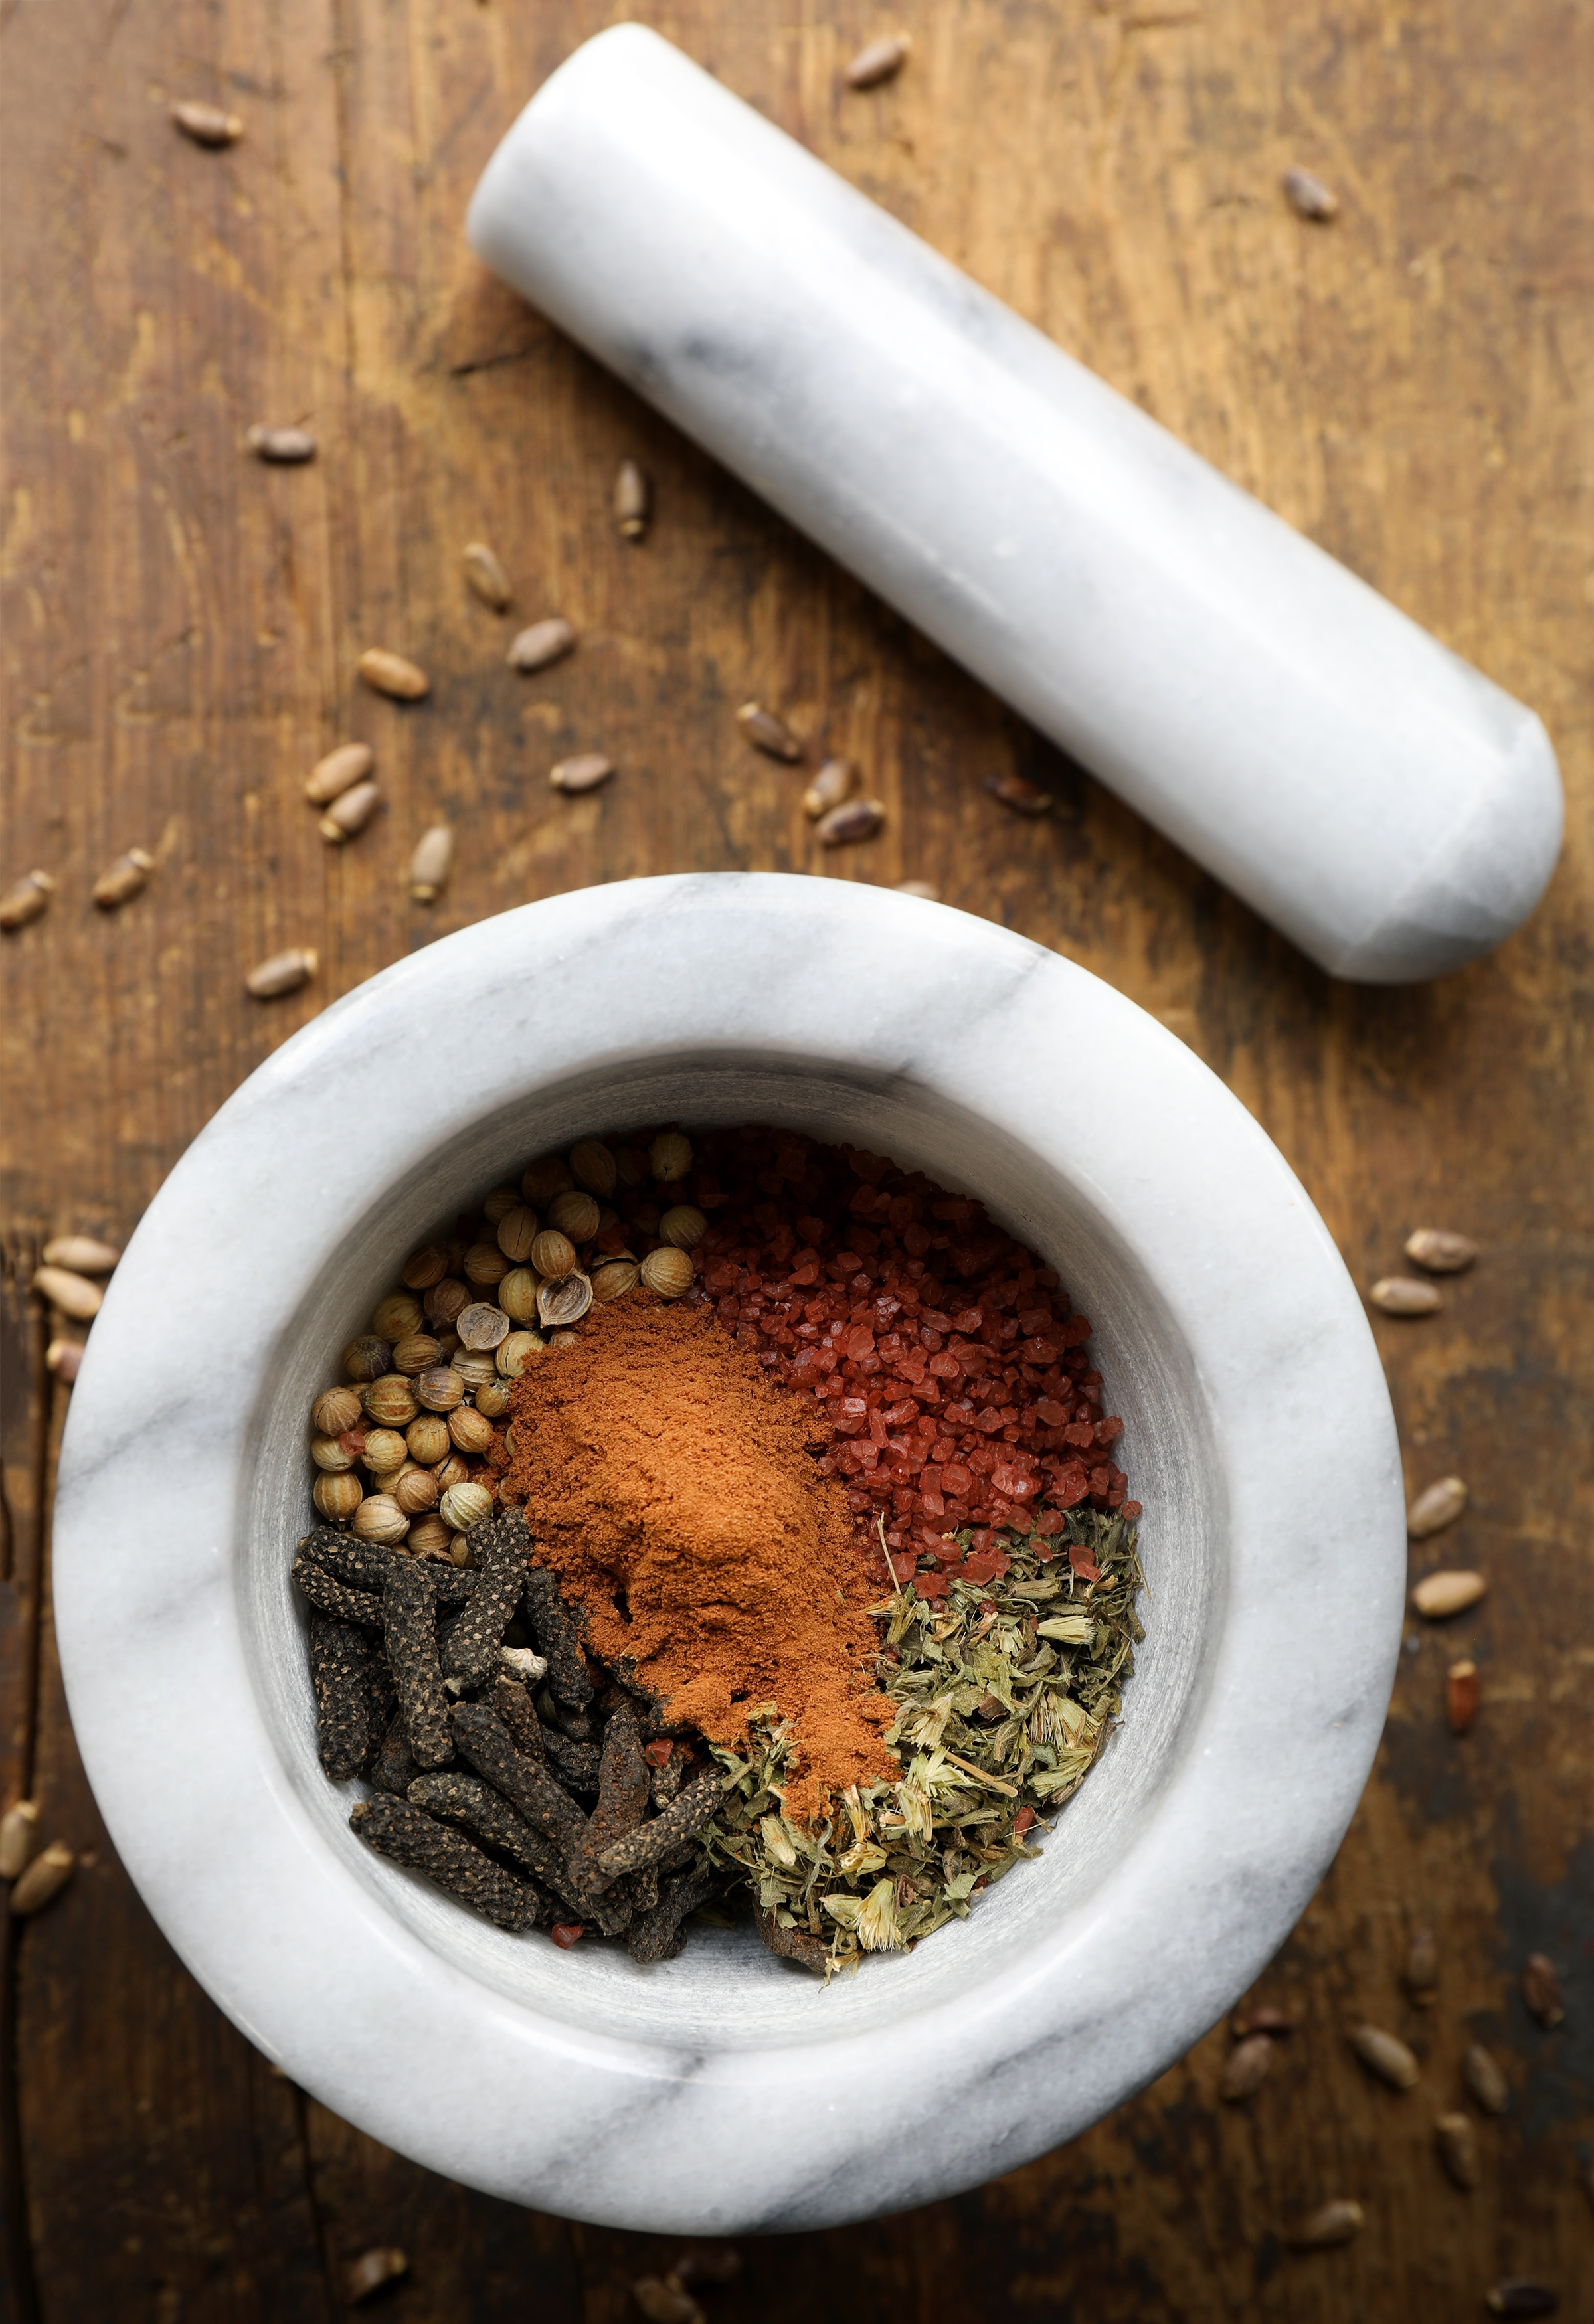 Whole dried herbs in mortar with pestle